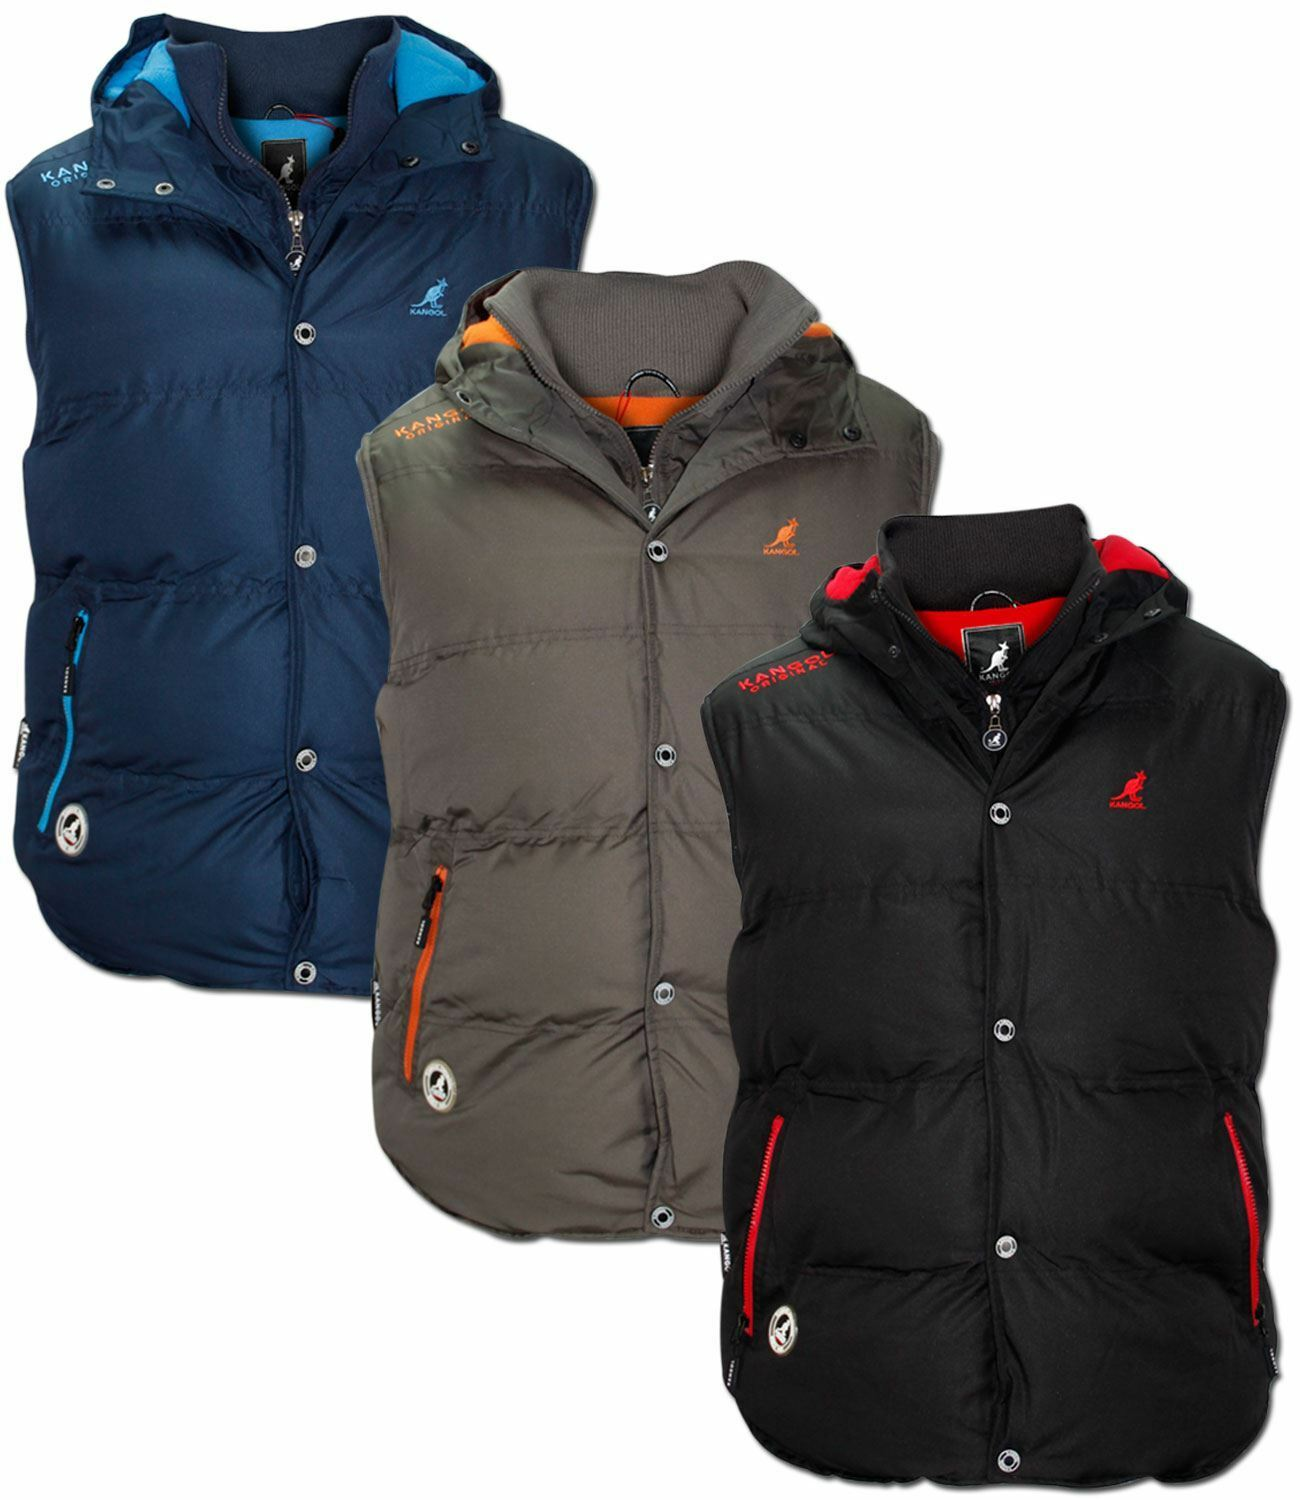 We have a fantastic range of men's gilets in stock at Tokyo Laundry that includes body warmer jackets in both classic and new designs, all of which are made from the highest quality materials.